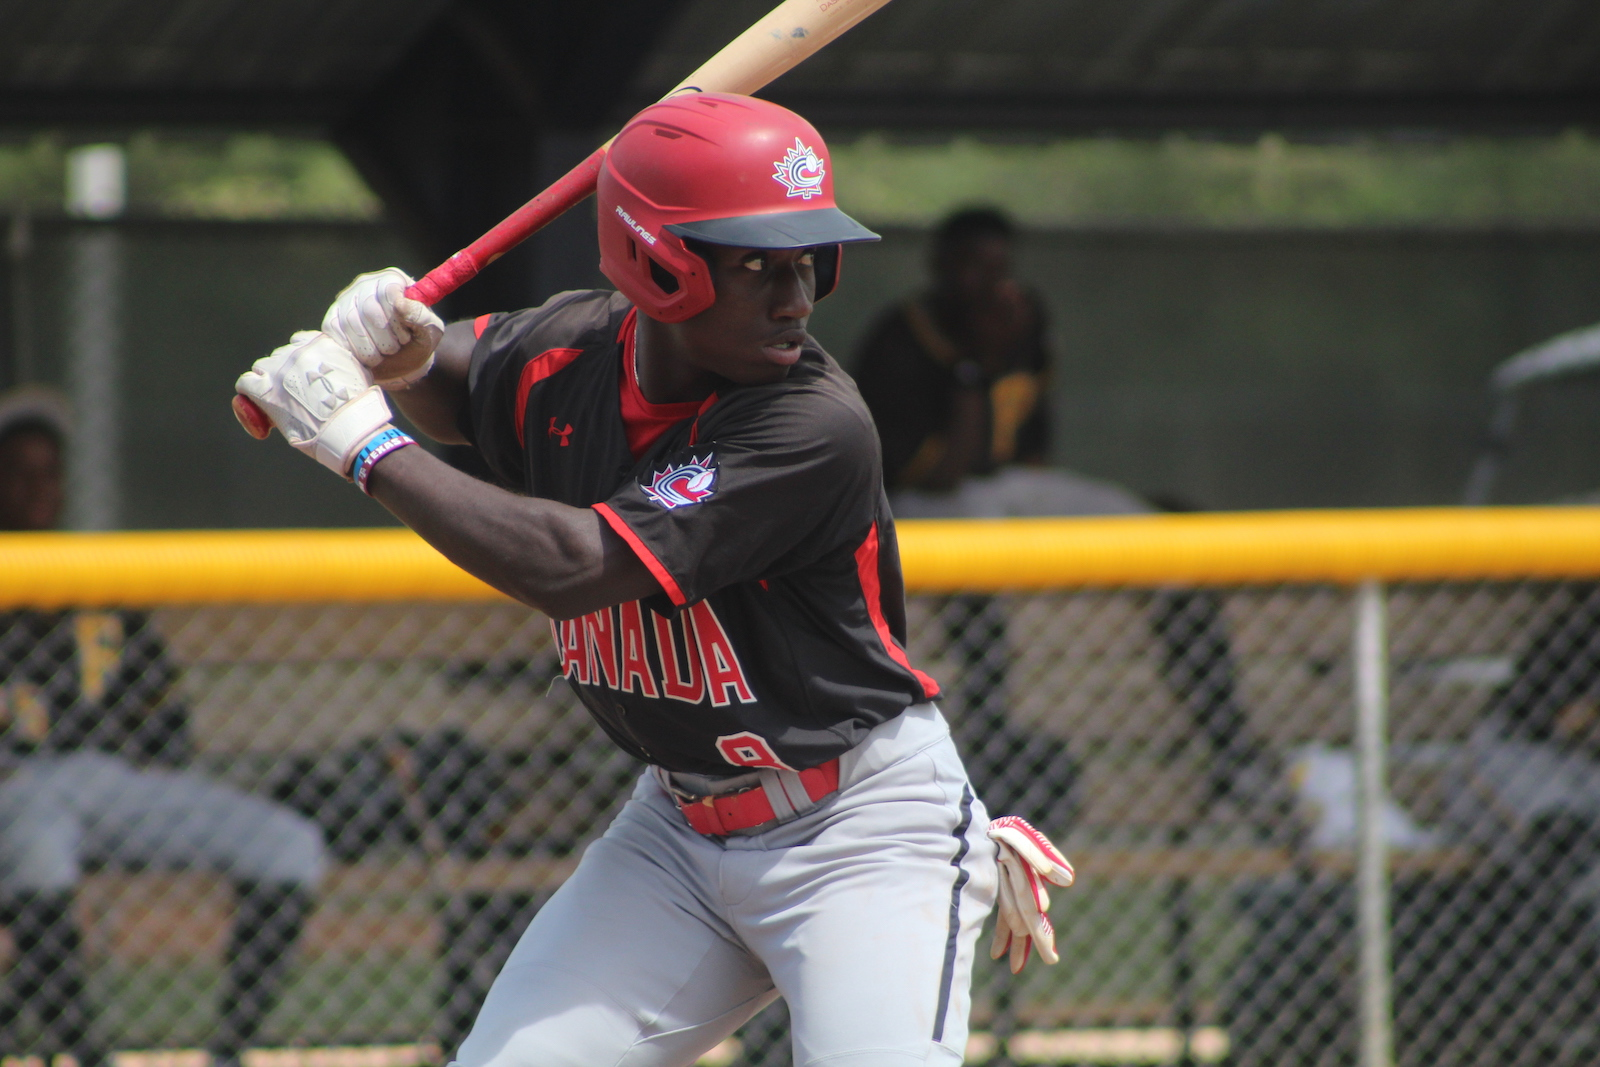 Toronto Blue Jays' third-round pick and Ontario Blue Jays alum Dasan Brown (Oakville, Ont.) is one of the players that has been invited to the Junior National Team's selection camp. Photo: Baseball Canada